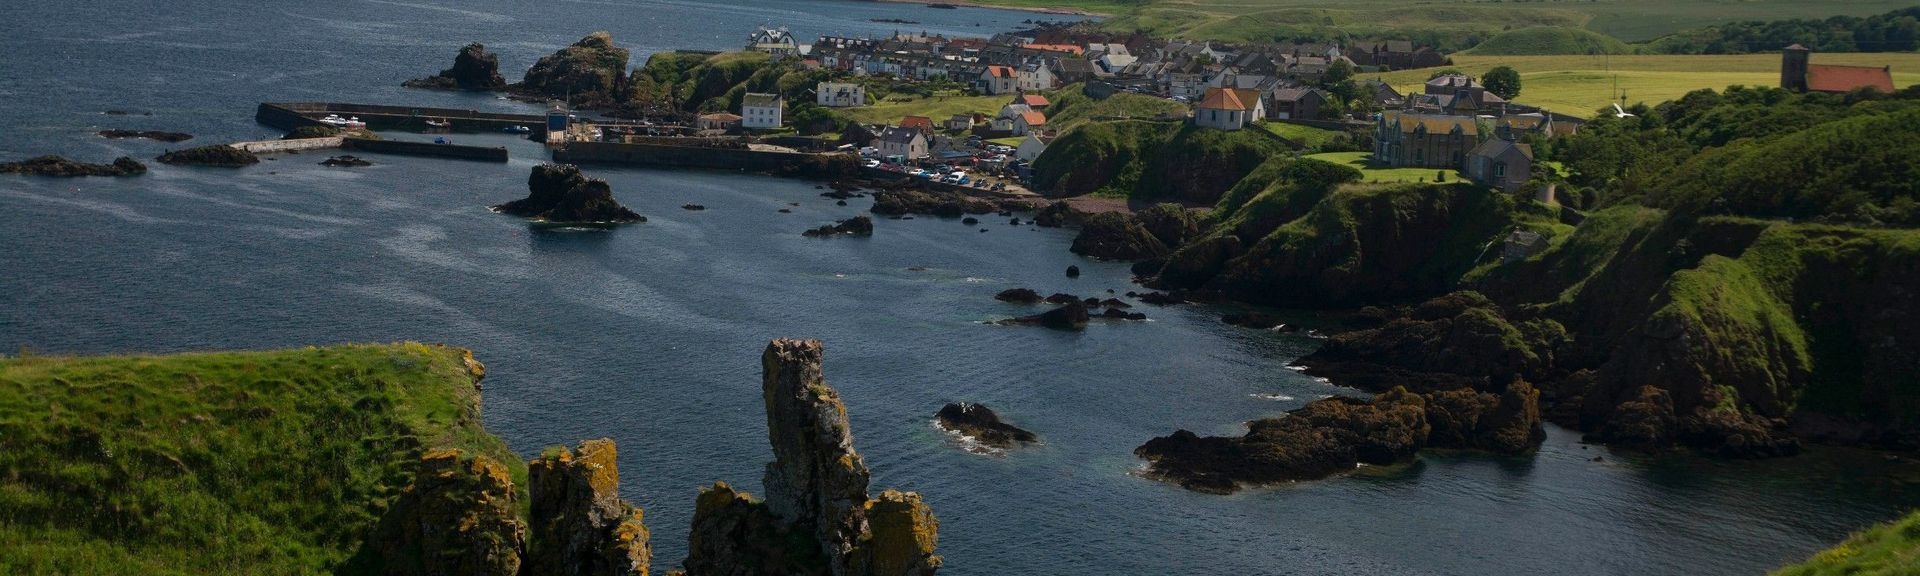 Coldingham, Eyemouth, Scottish Borders, UK